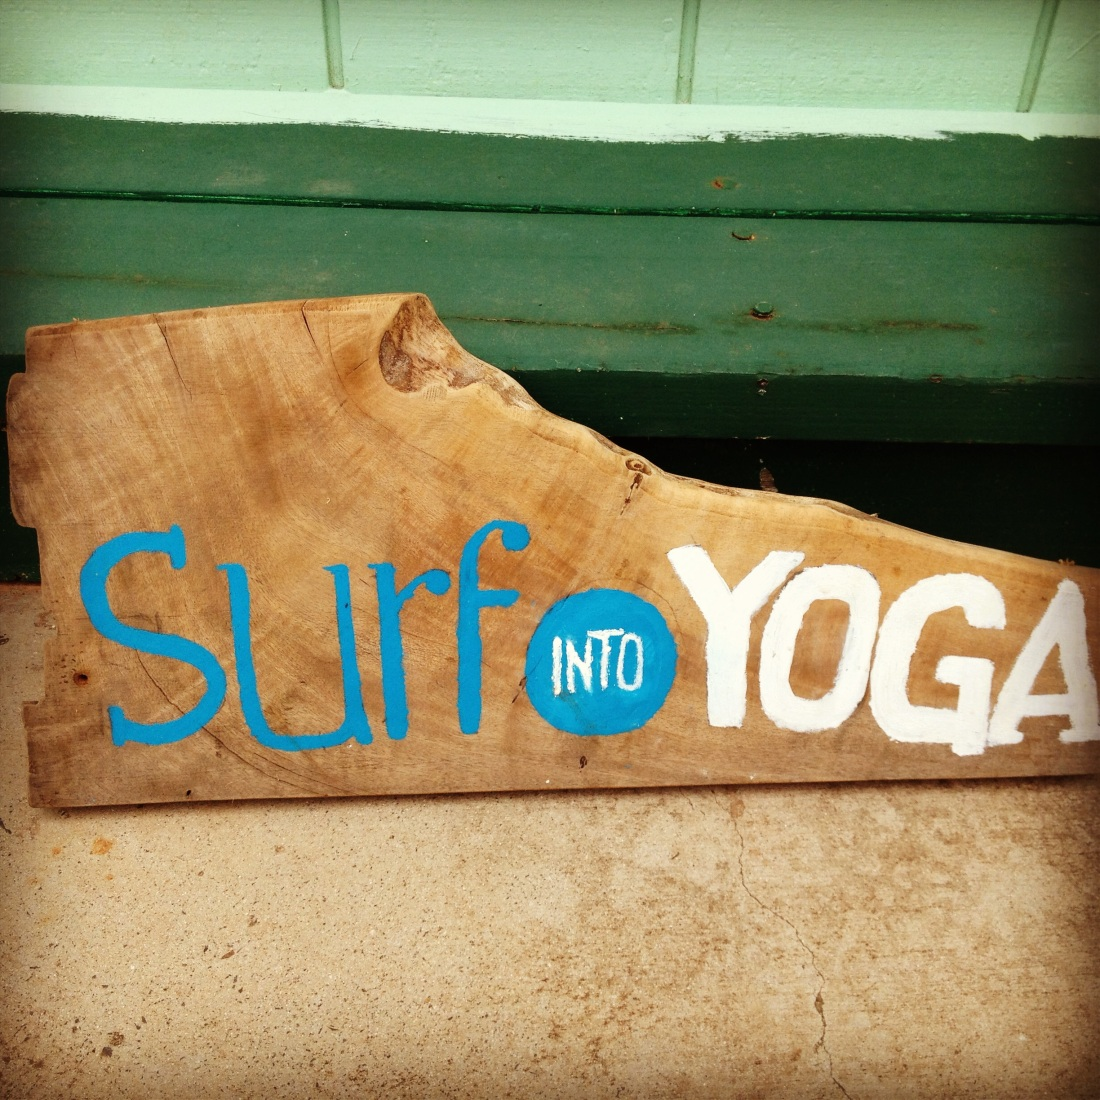 The original SIY sign finds a new home in Kauai.